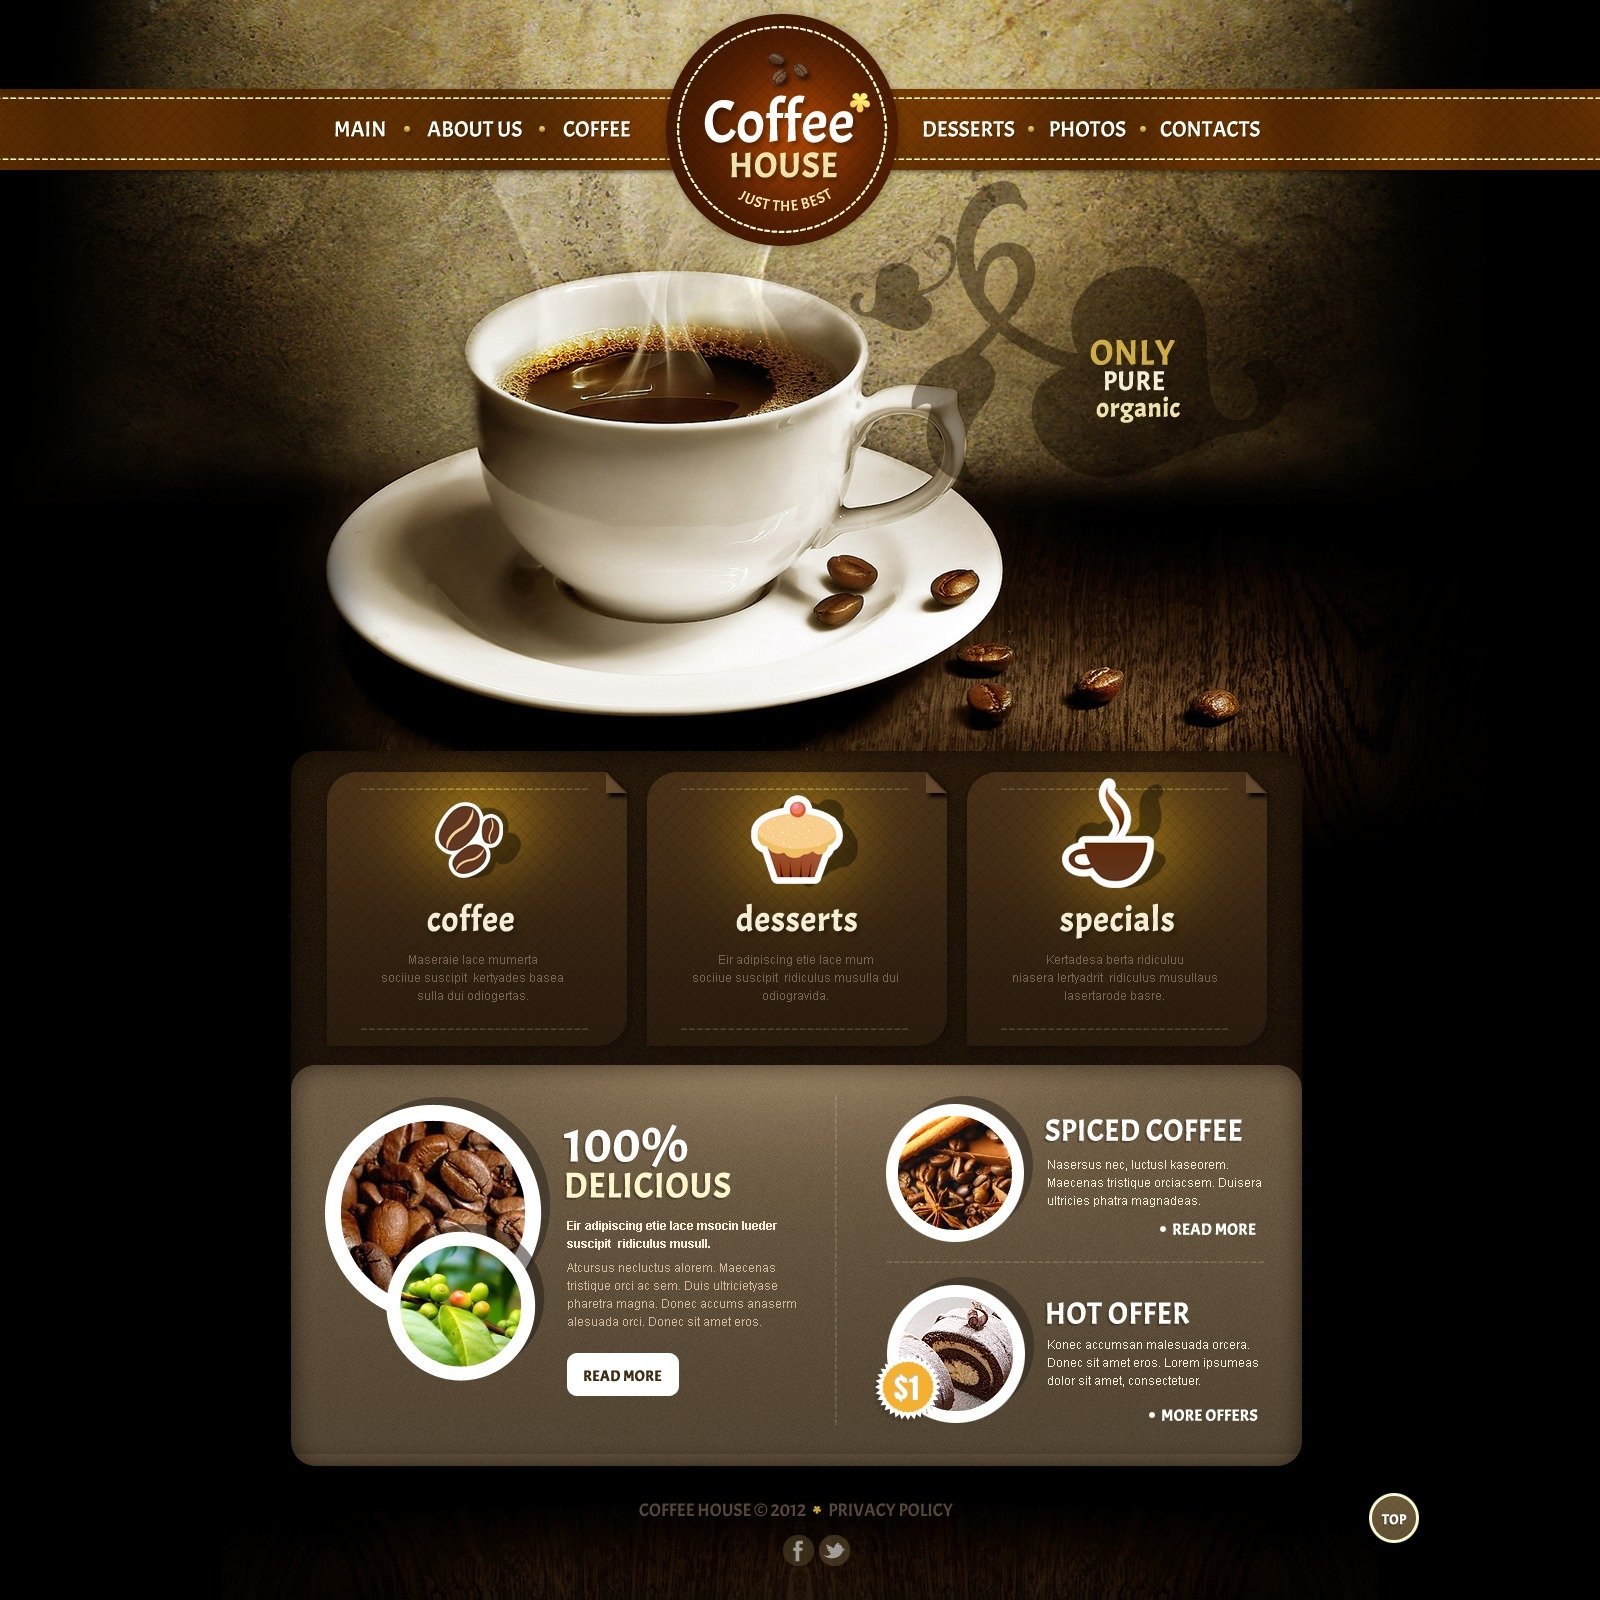 Coffee shop joomla template 39035 for Coffee shop design software